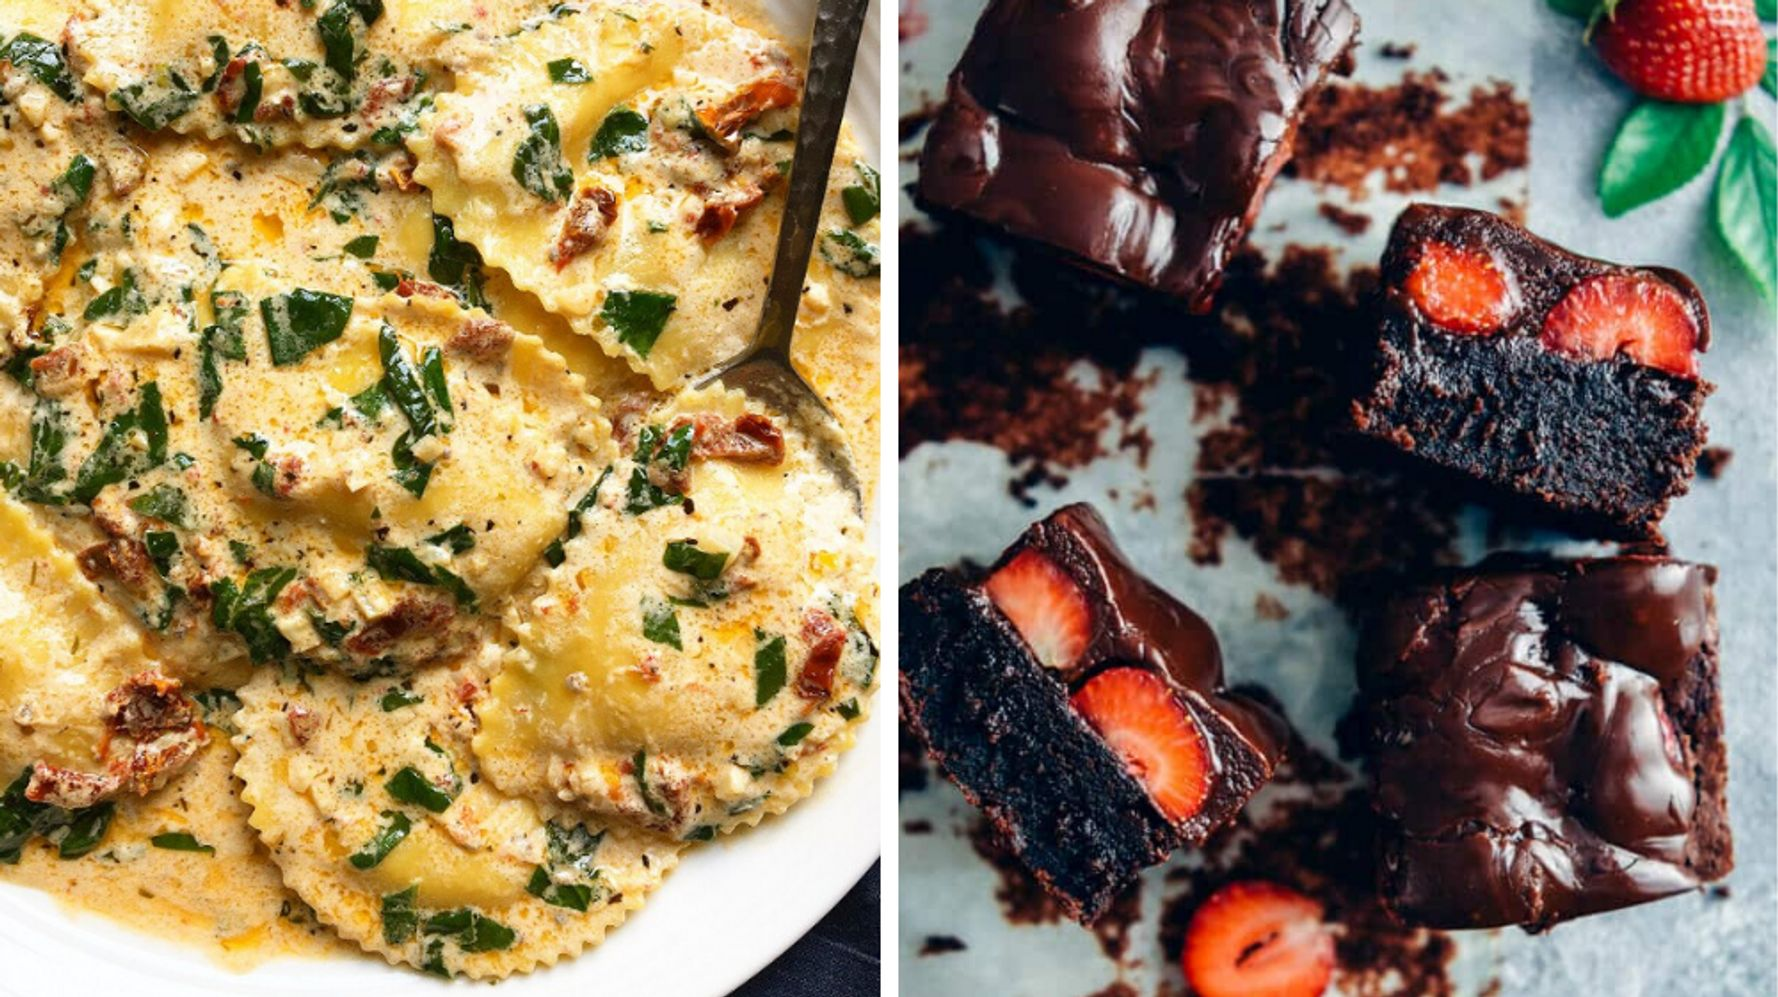 15 Stunning Recipes We Fell In Love With In June